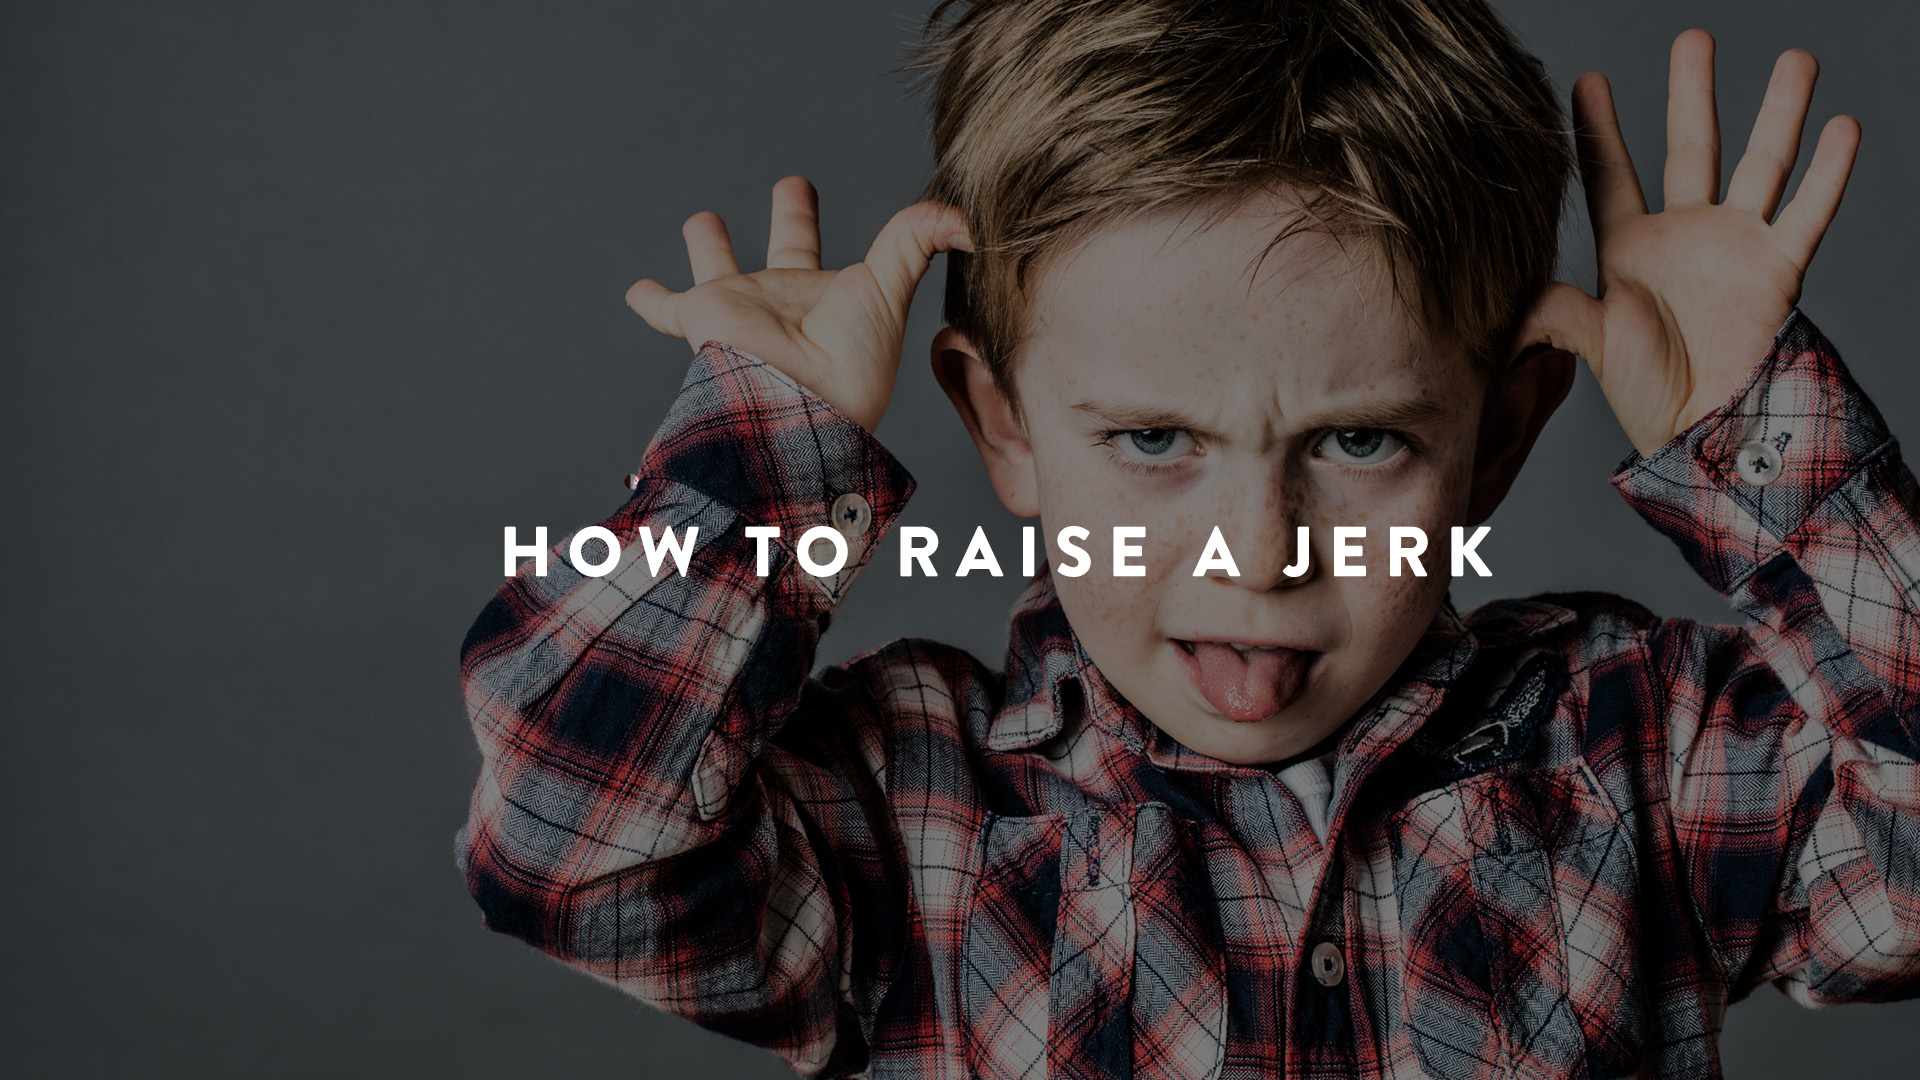 How to raise a jerk